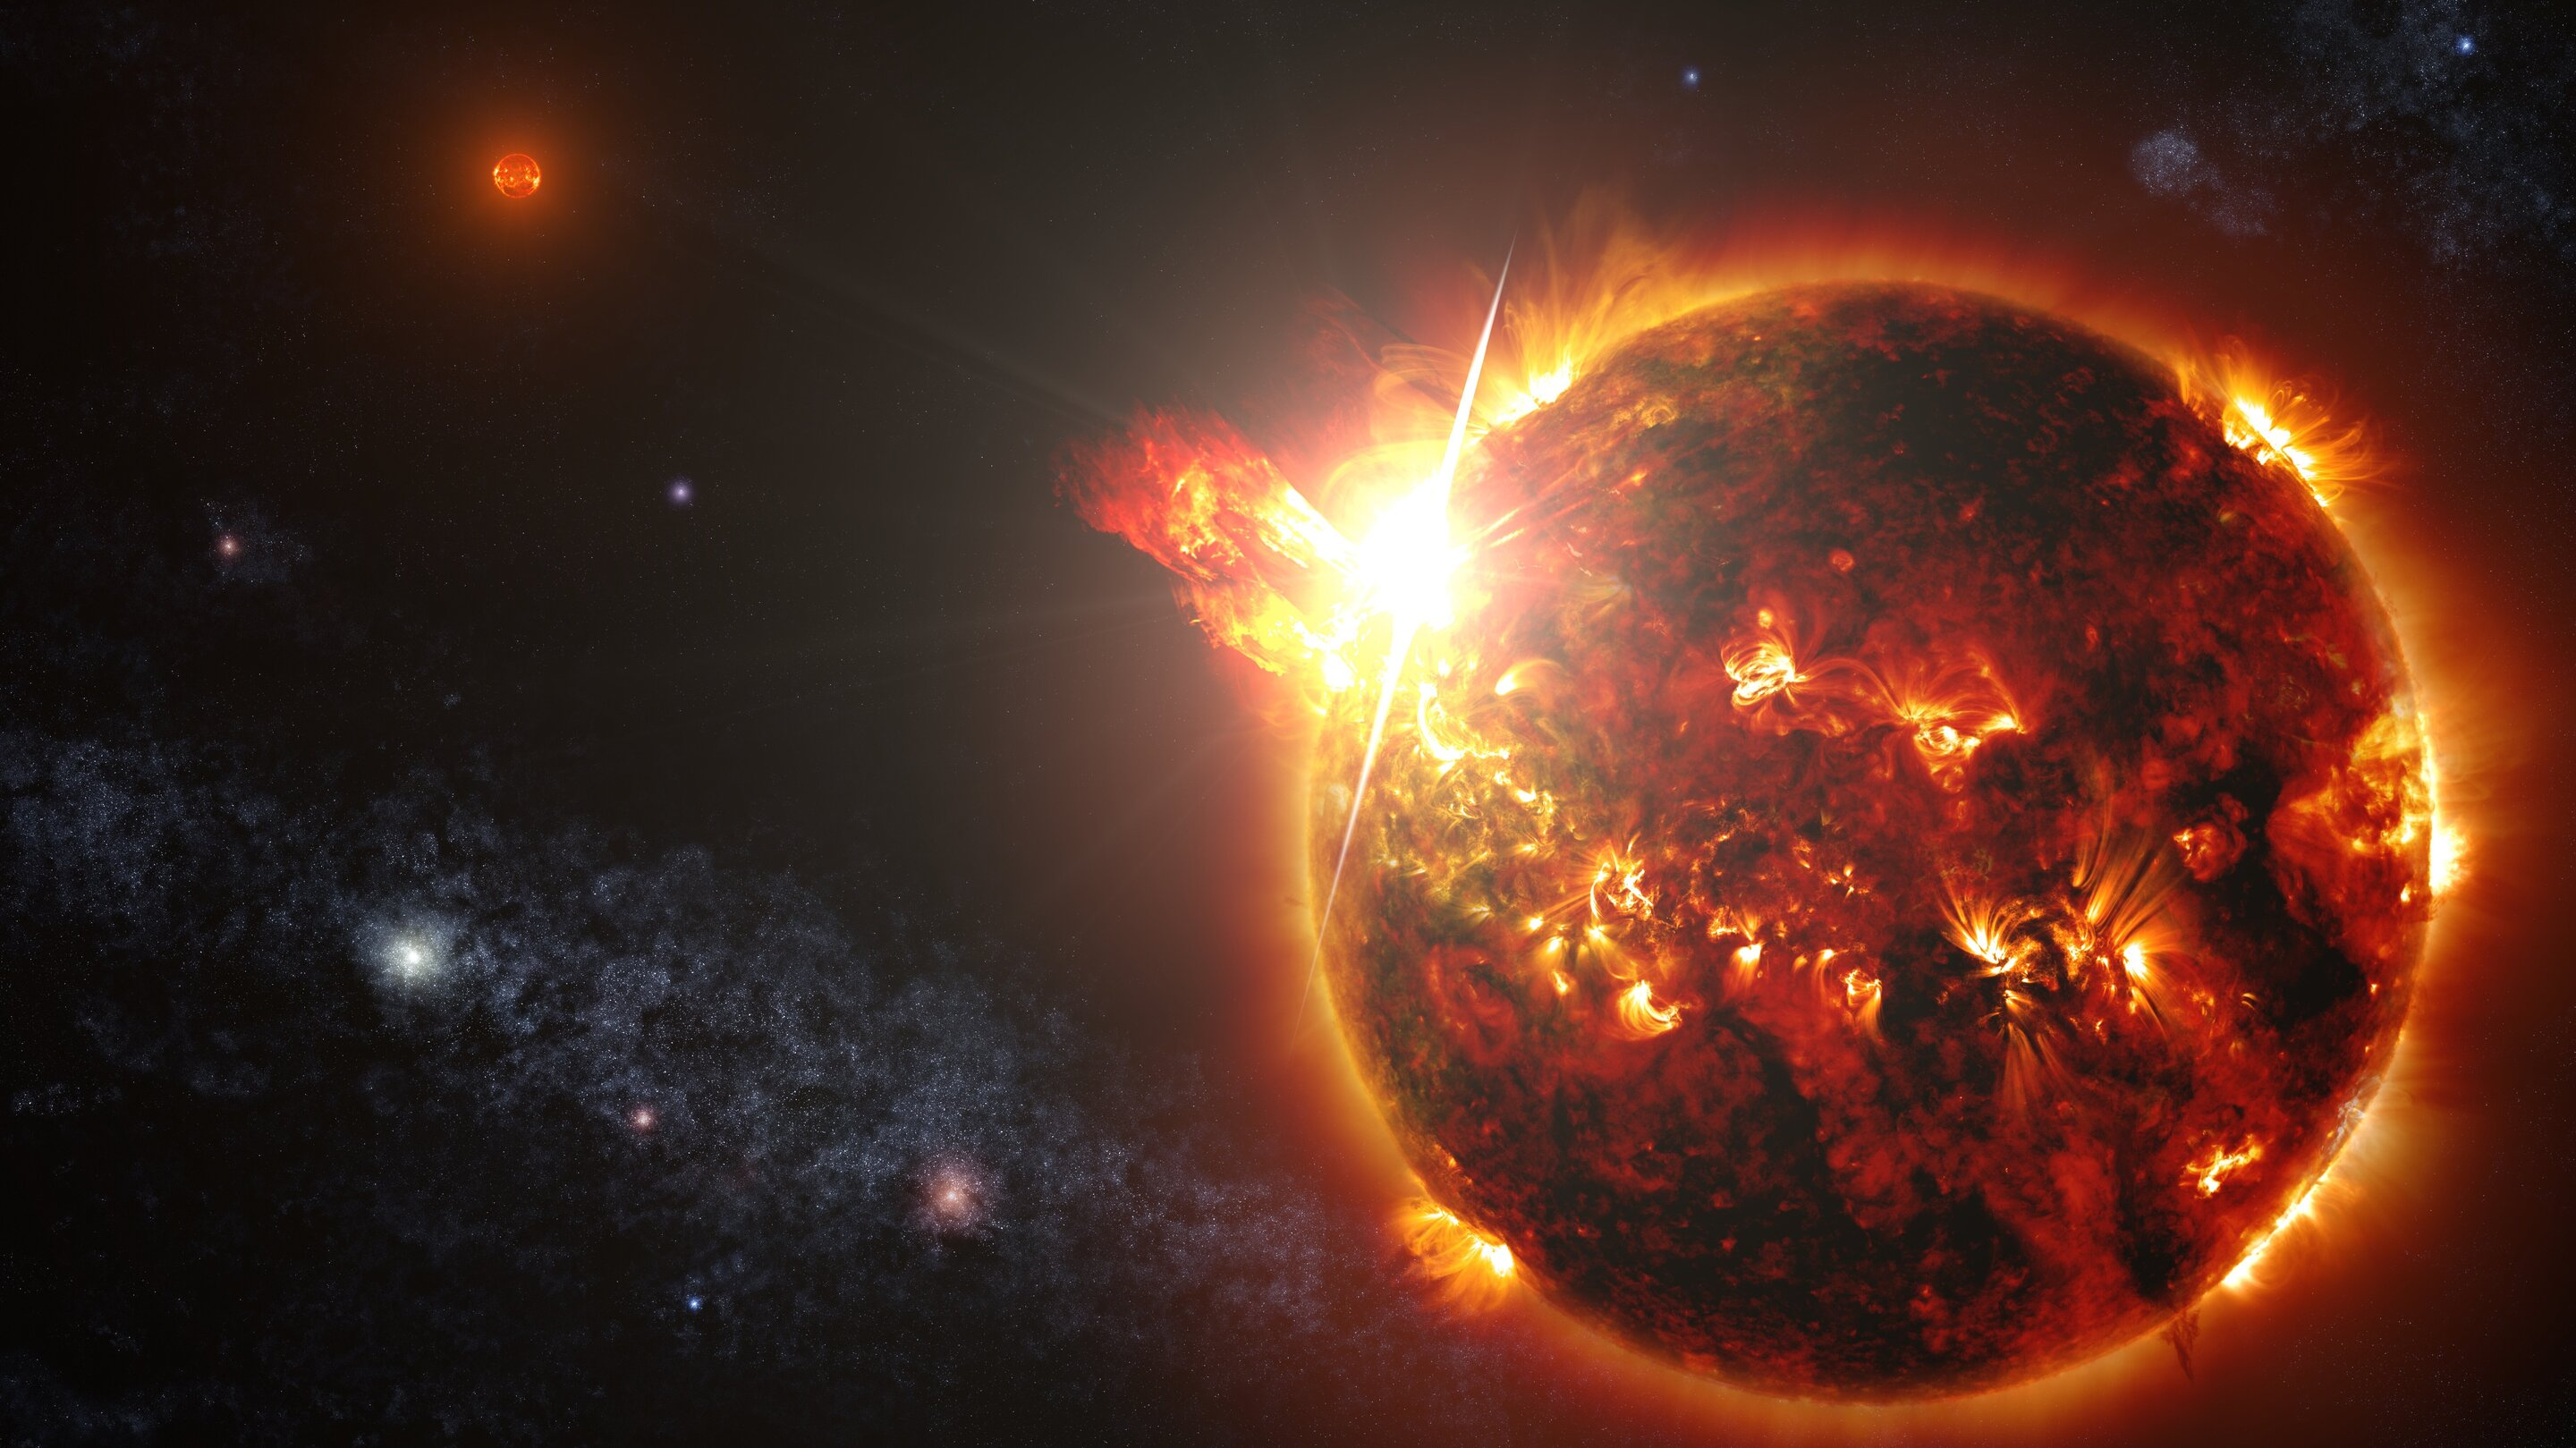 Robust stellar flares might not prevent life on exoplanets, could facilitate its detection